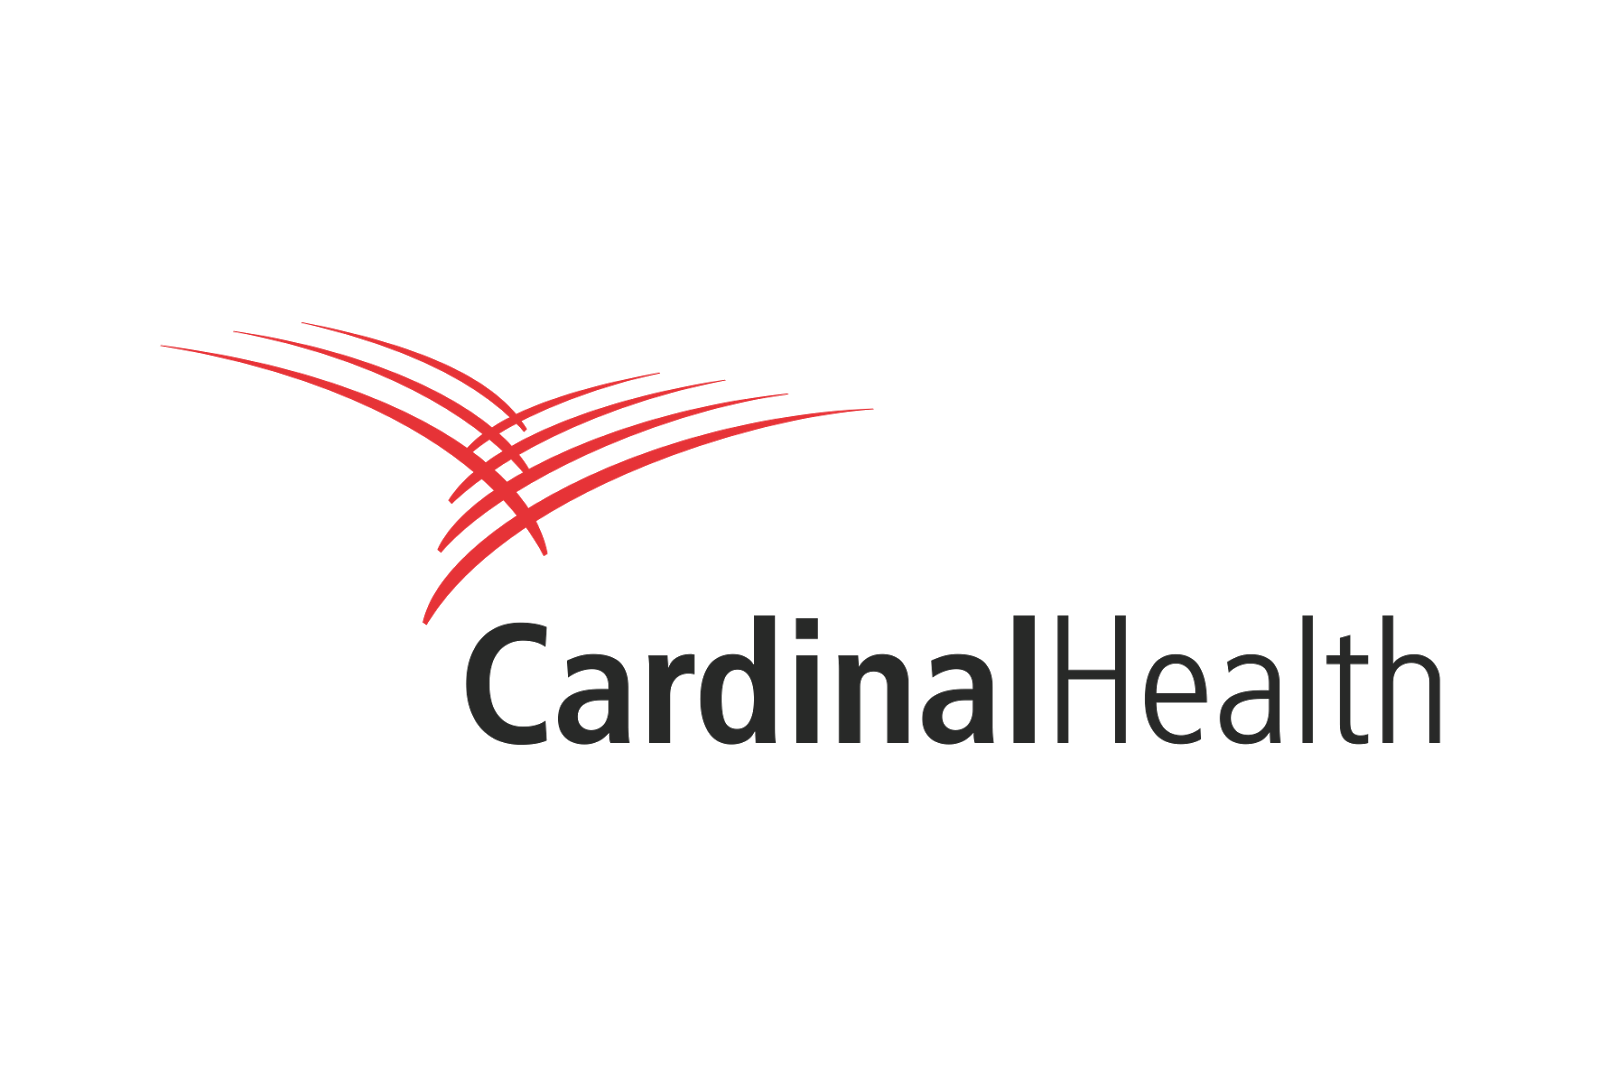 cardinal health inc Cardinal health improves the cost-effectiveness of healthcare we help focus on patient care while reducing costs, enhancing efficiency and improving quality.